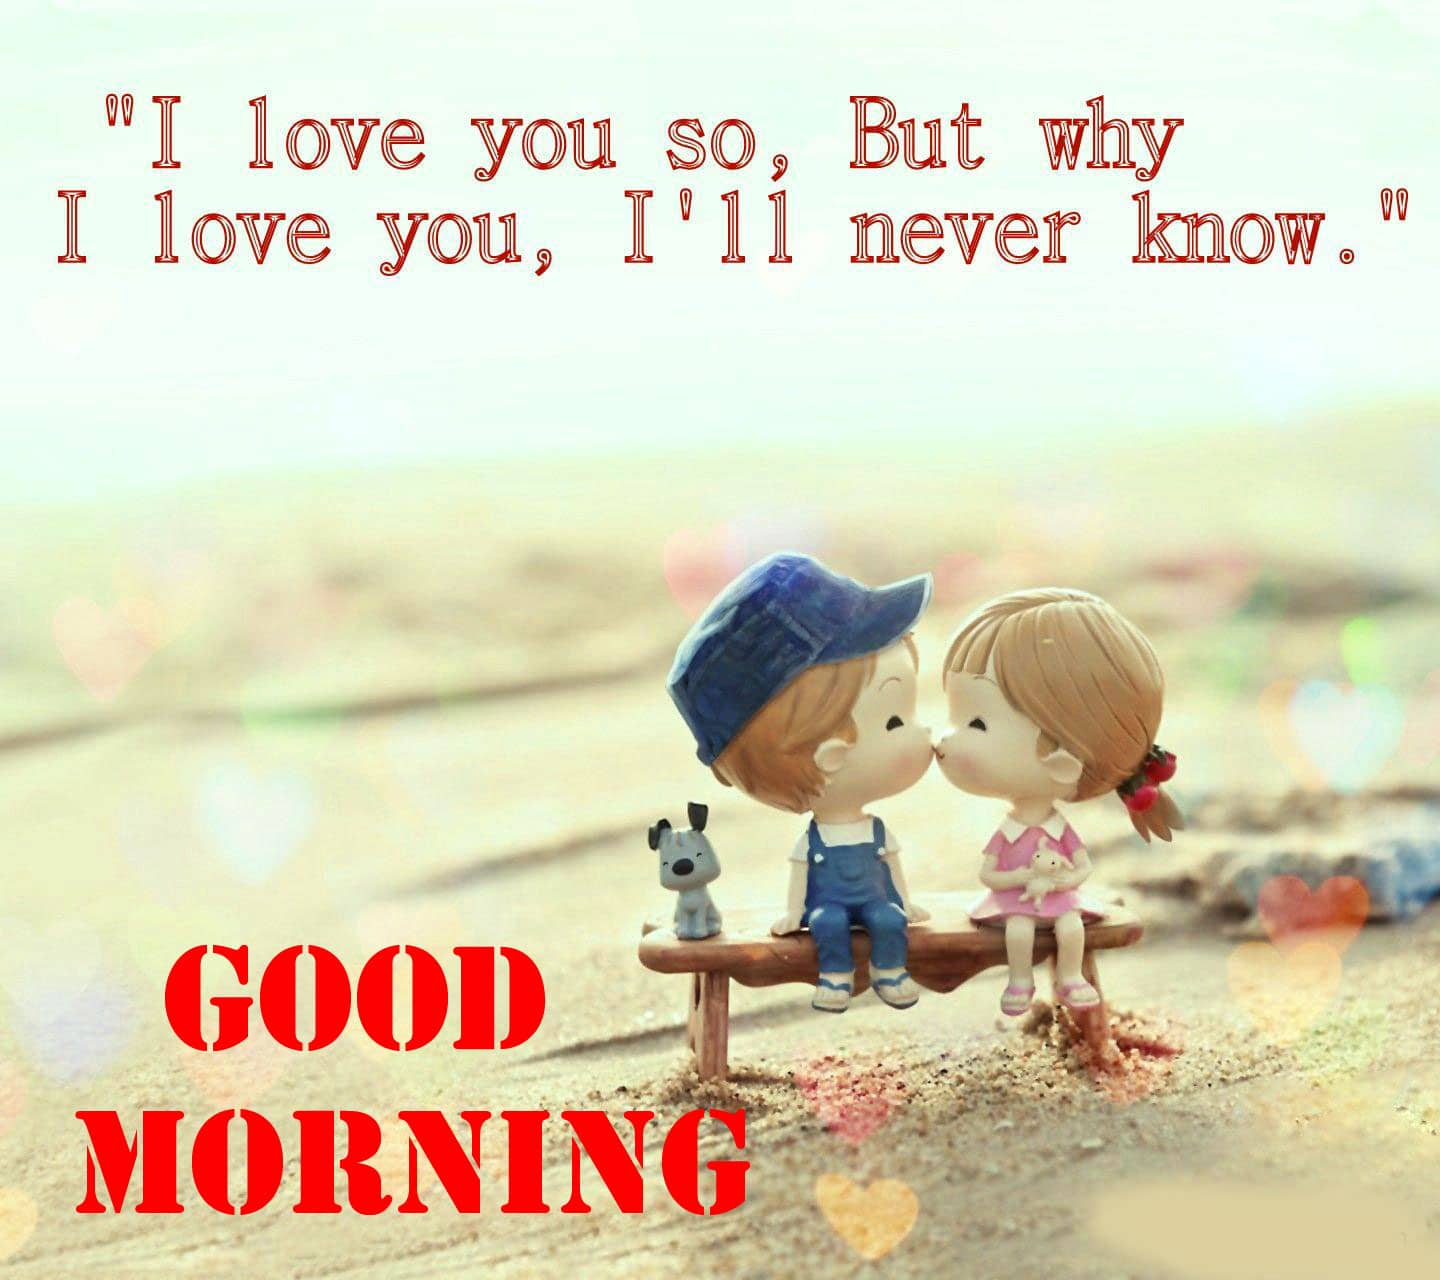 Good Morning Wishes Wallpaper Free 3